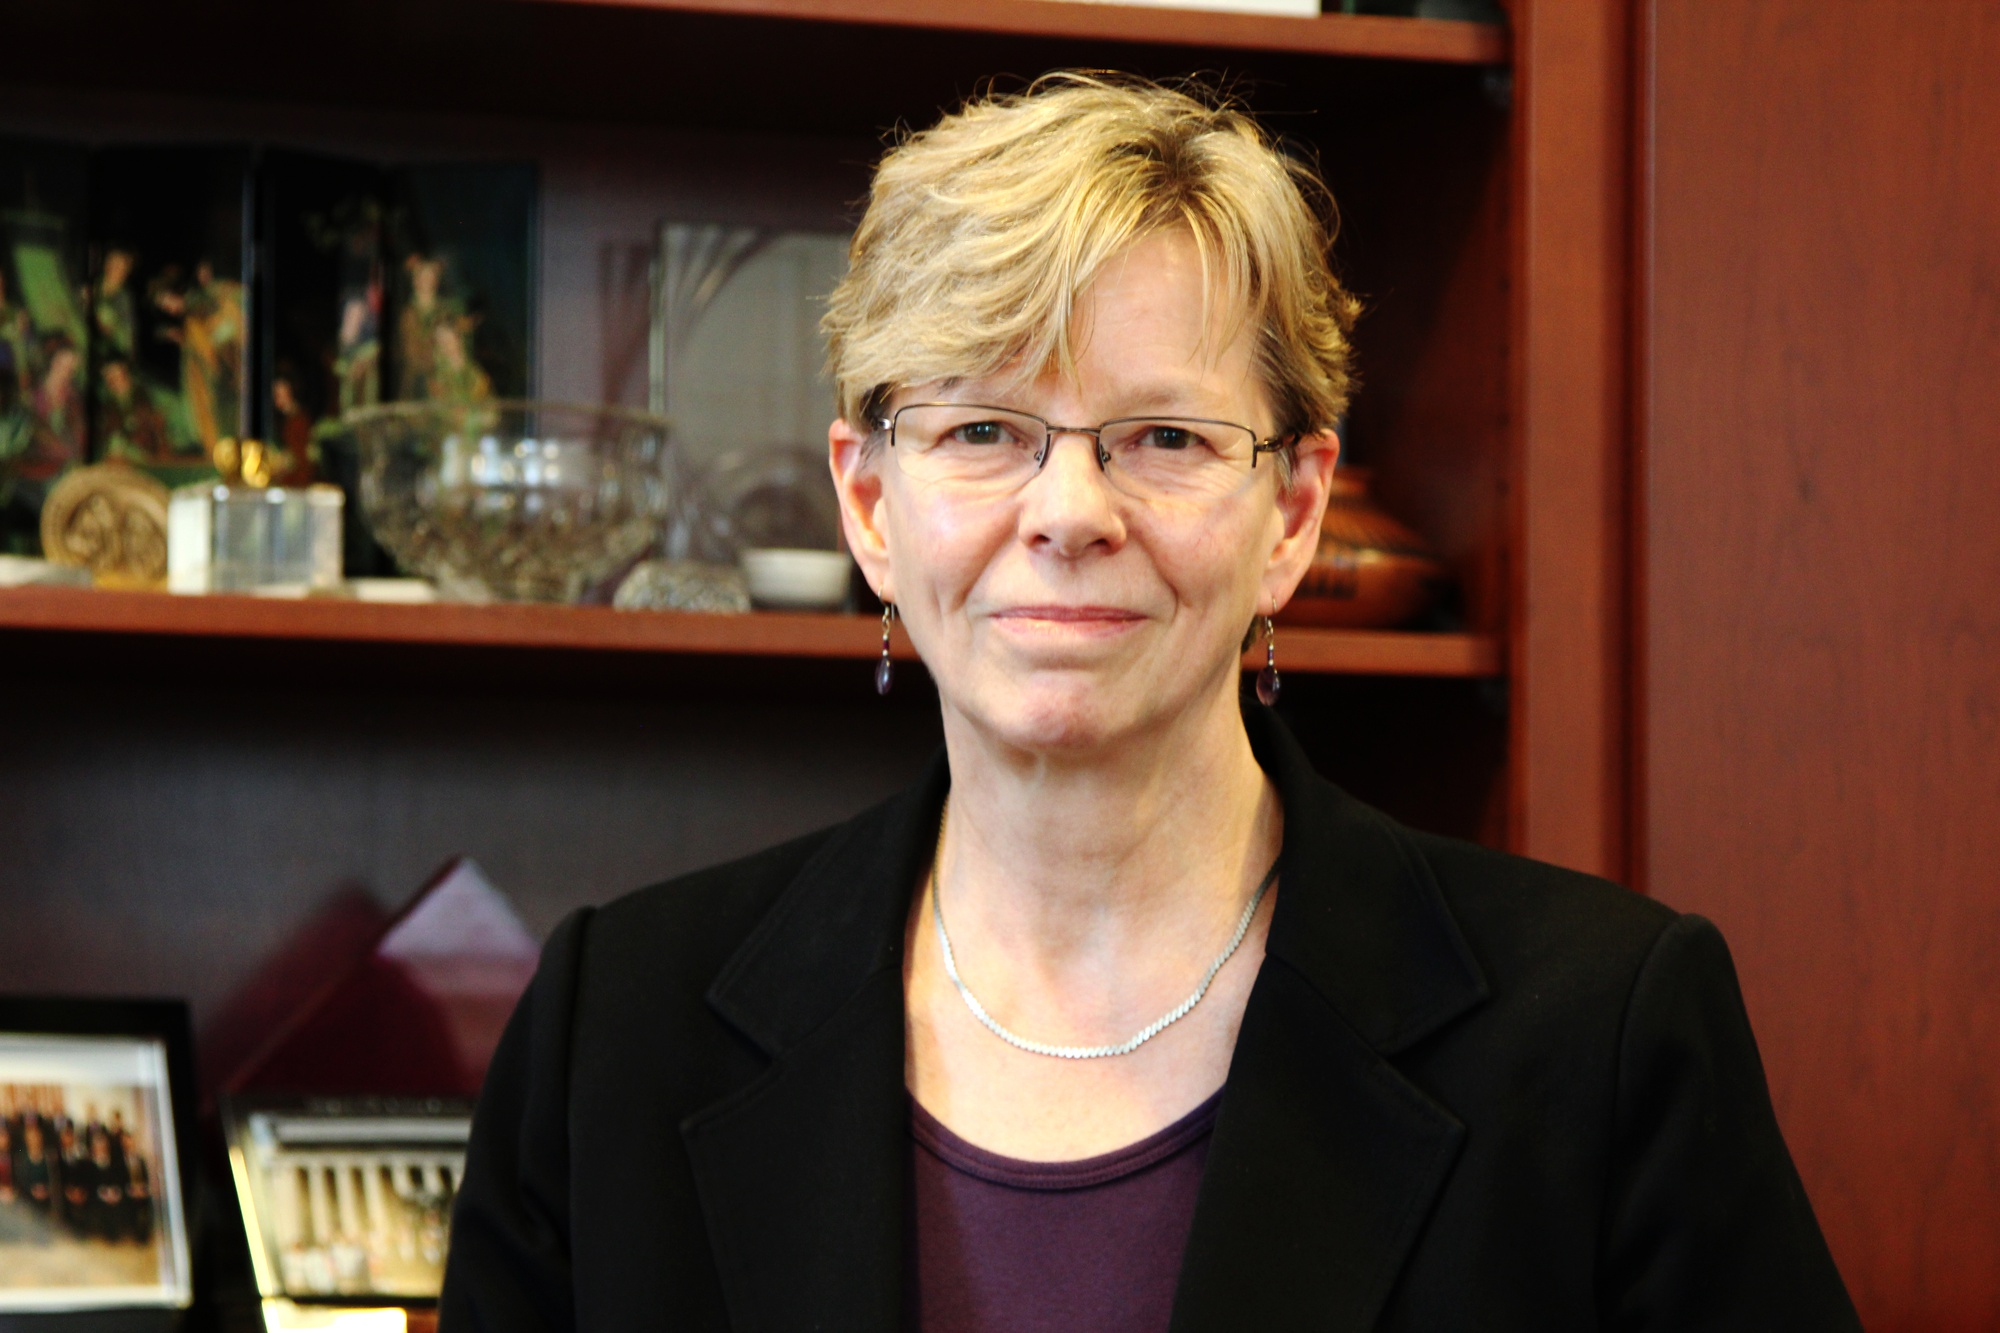 Cherry A. Murray, the dean of School of Engineering and Applied Science, poses in her office Tuesday afternoon, hours after announcing that she will resign after the end of 2014.